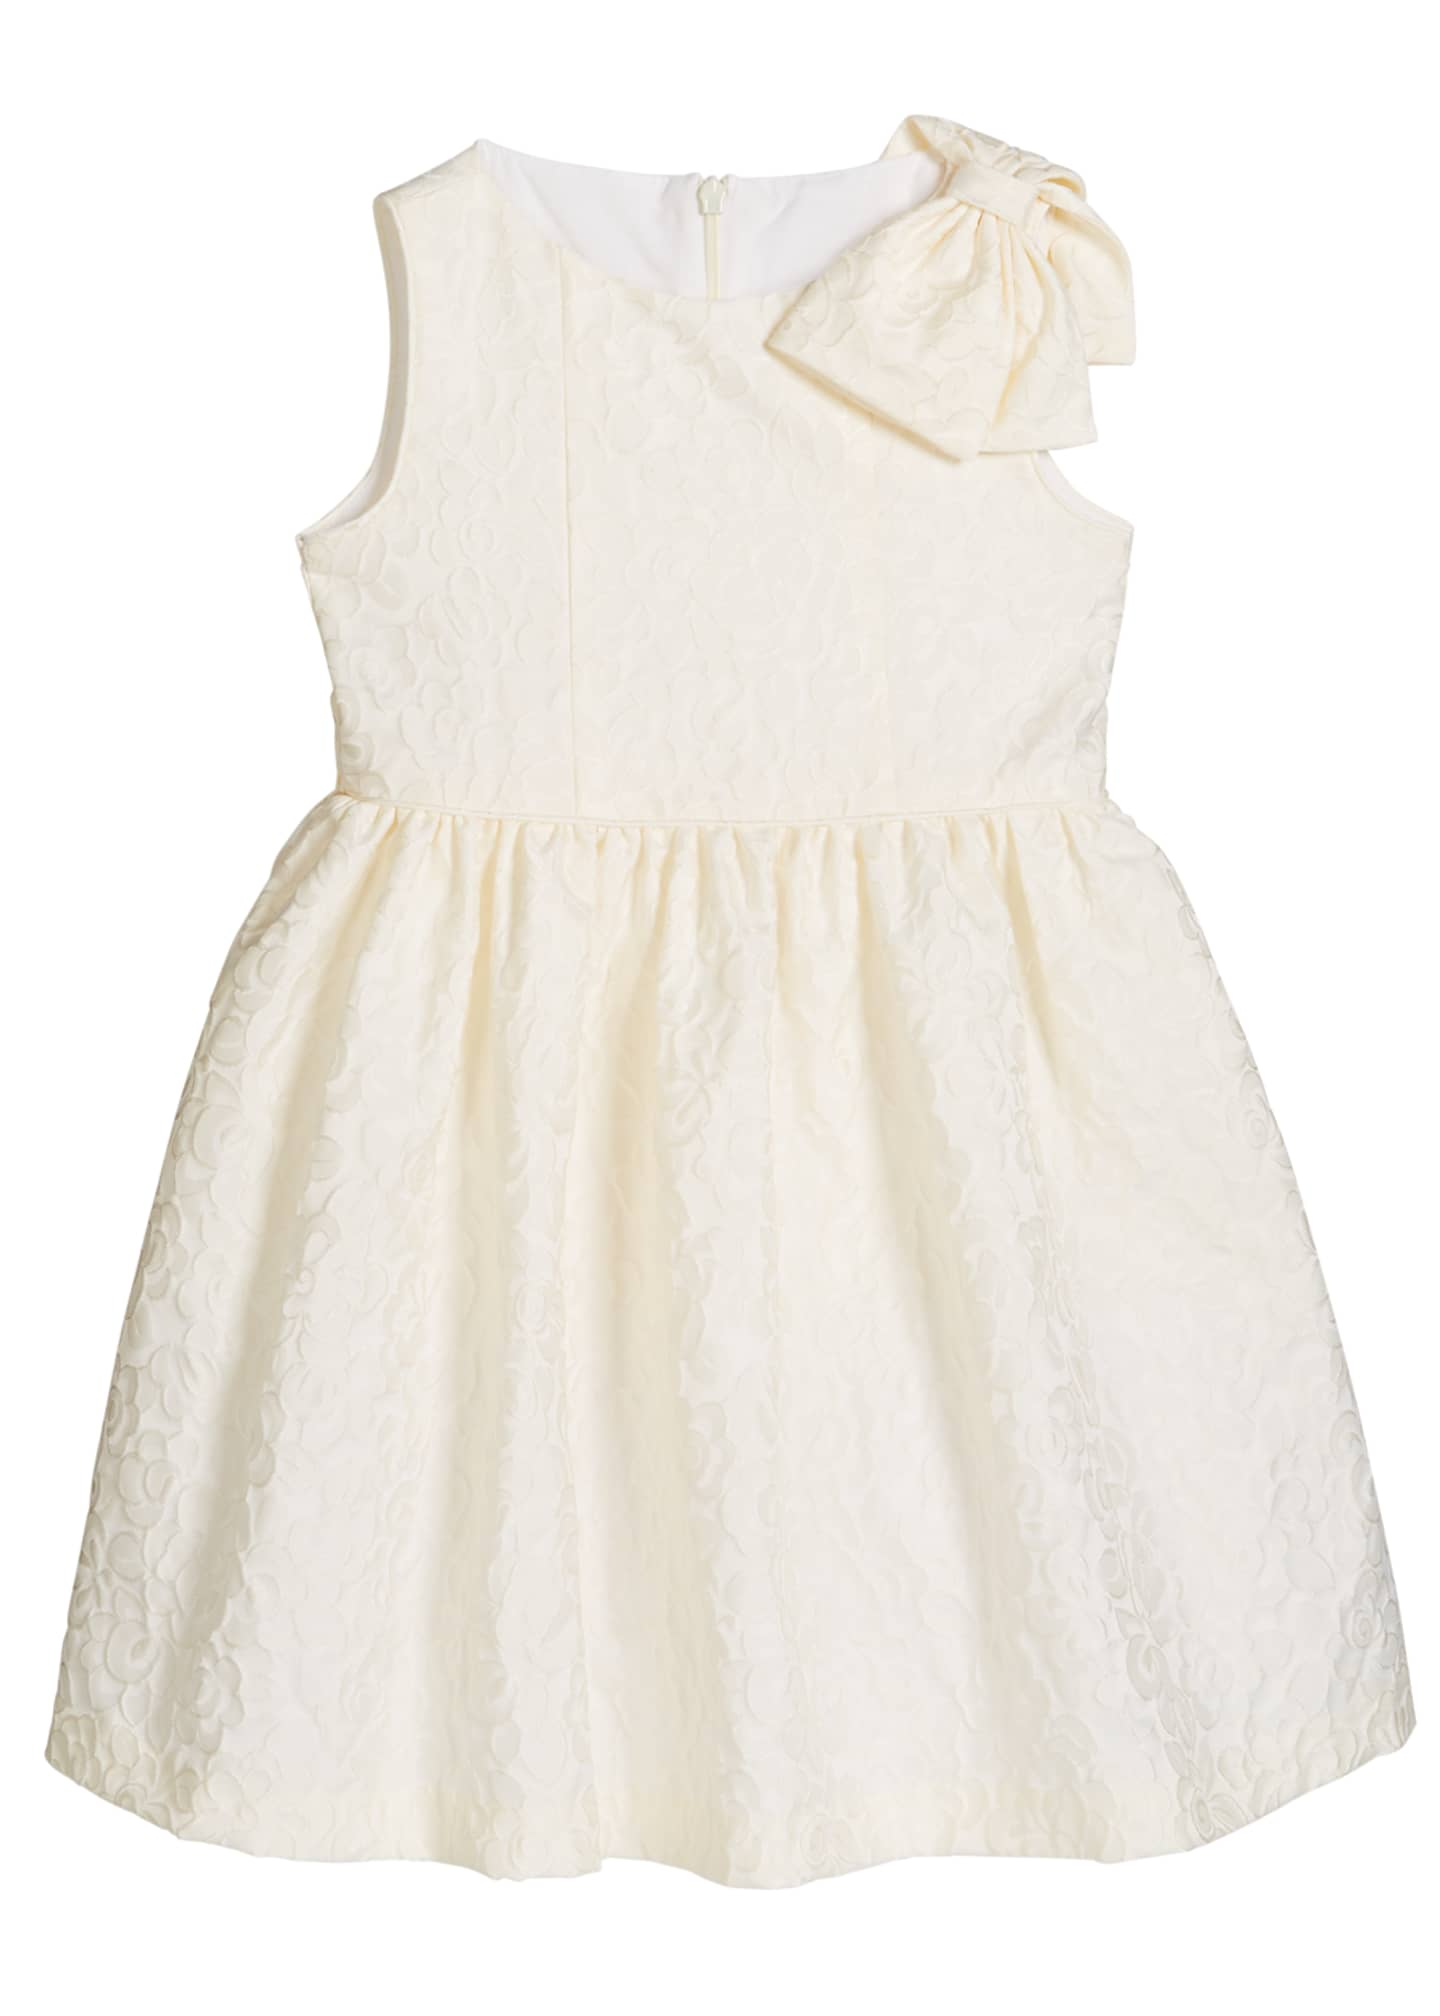 Image 1 of 2: Girl's Ivory Dress with Bow Shoulder, Size 5-6X